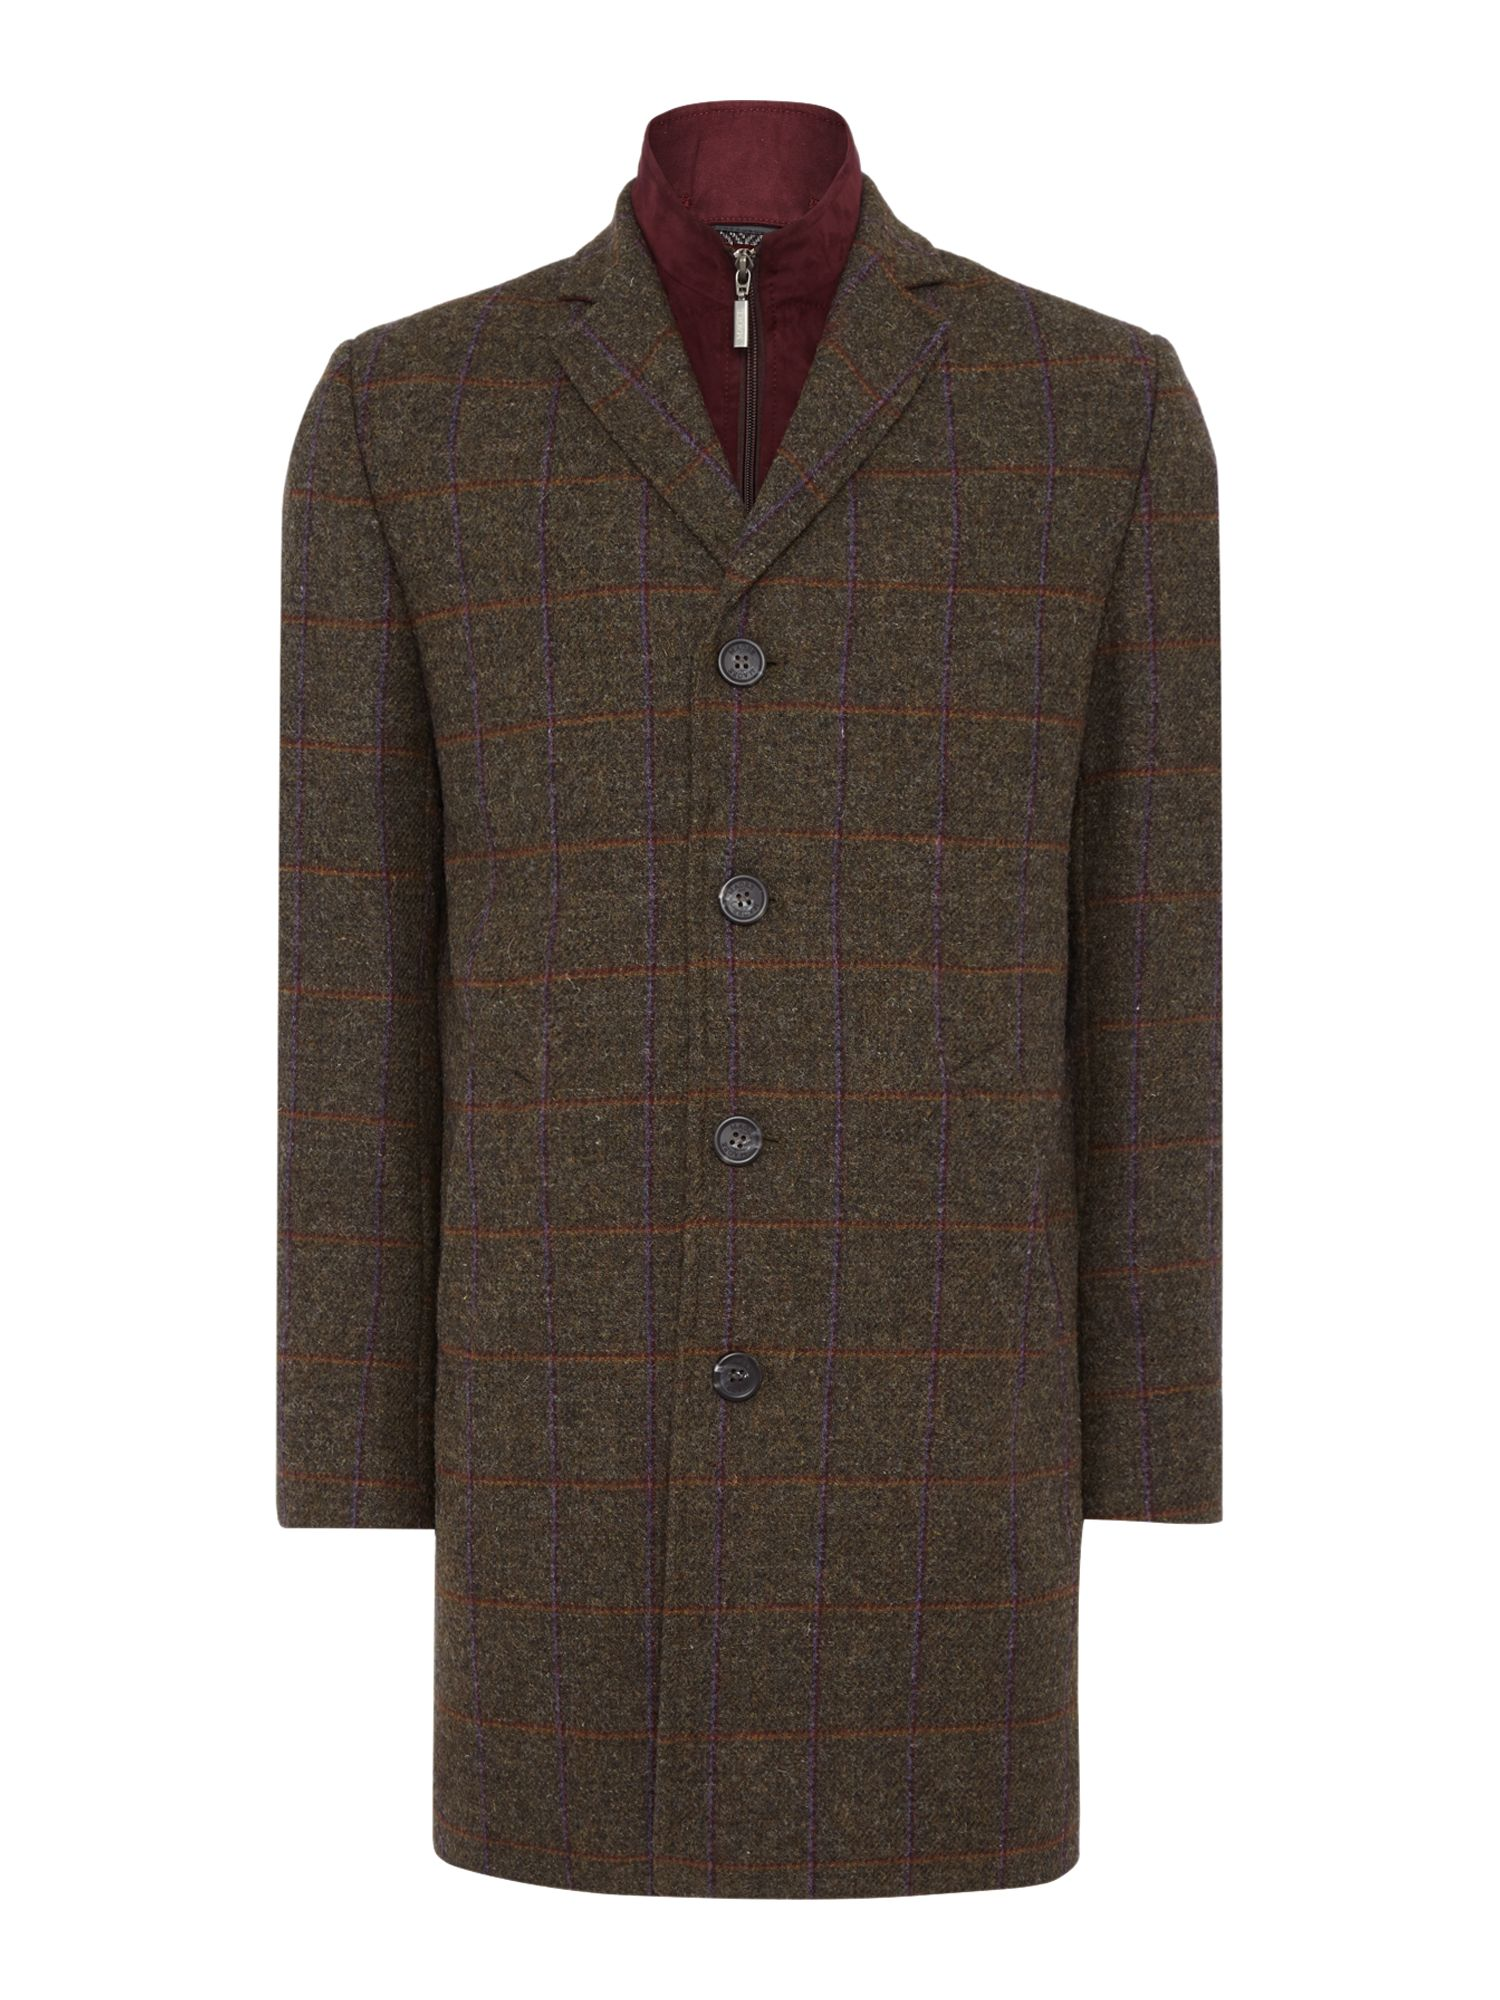 Men's Vintage Style Coats and Jackets Mens Magee Magee tweed overcoat £299.00 AT vintagedancer.com